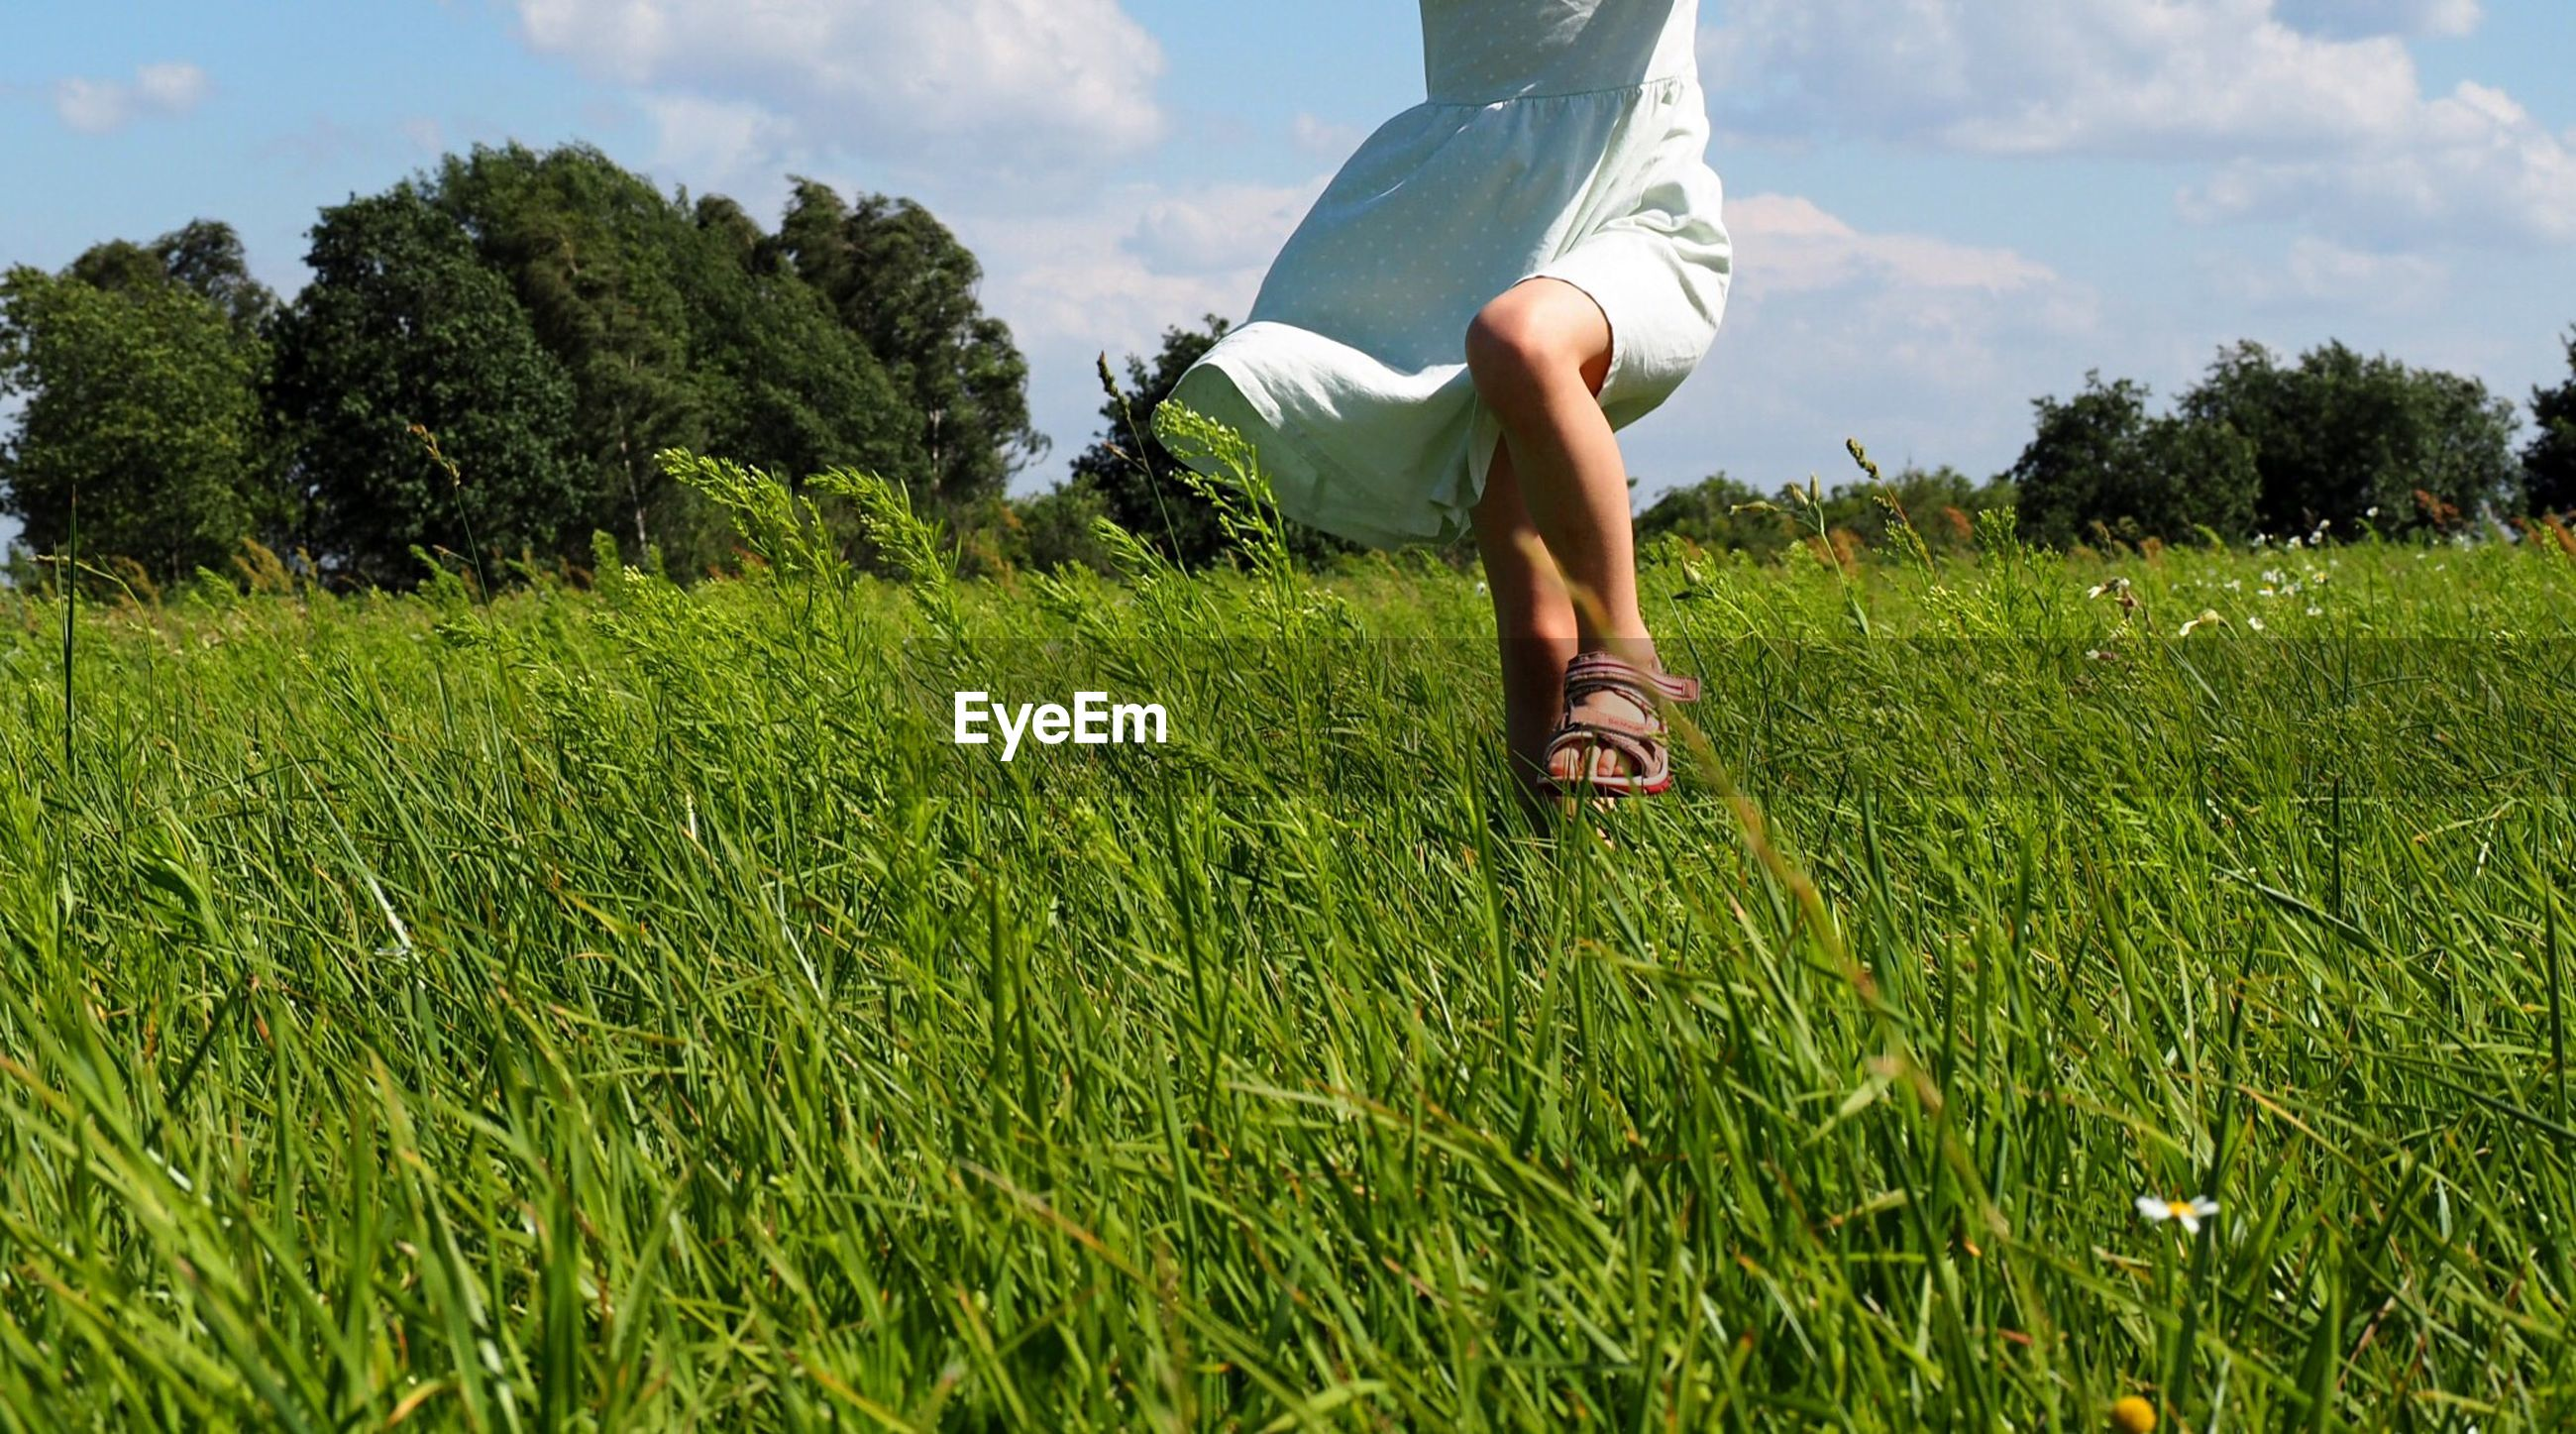 Low section of girl running on grassy field